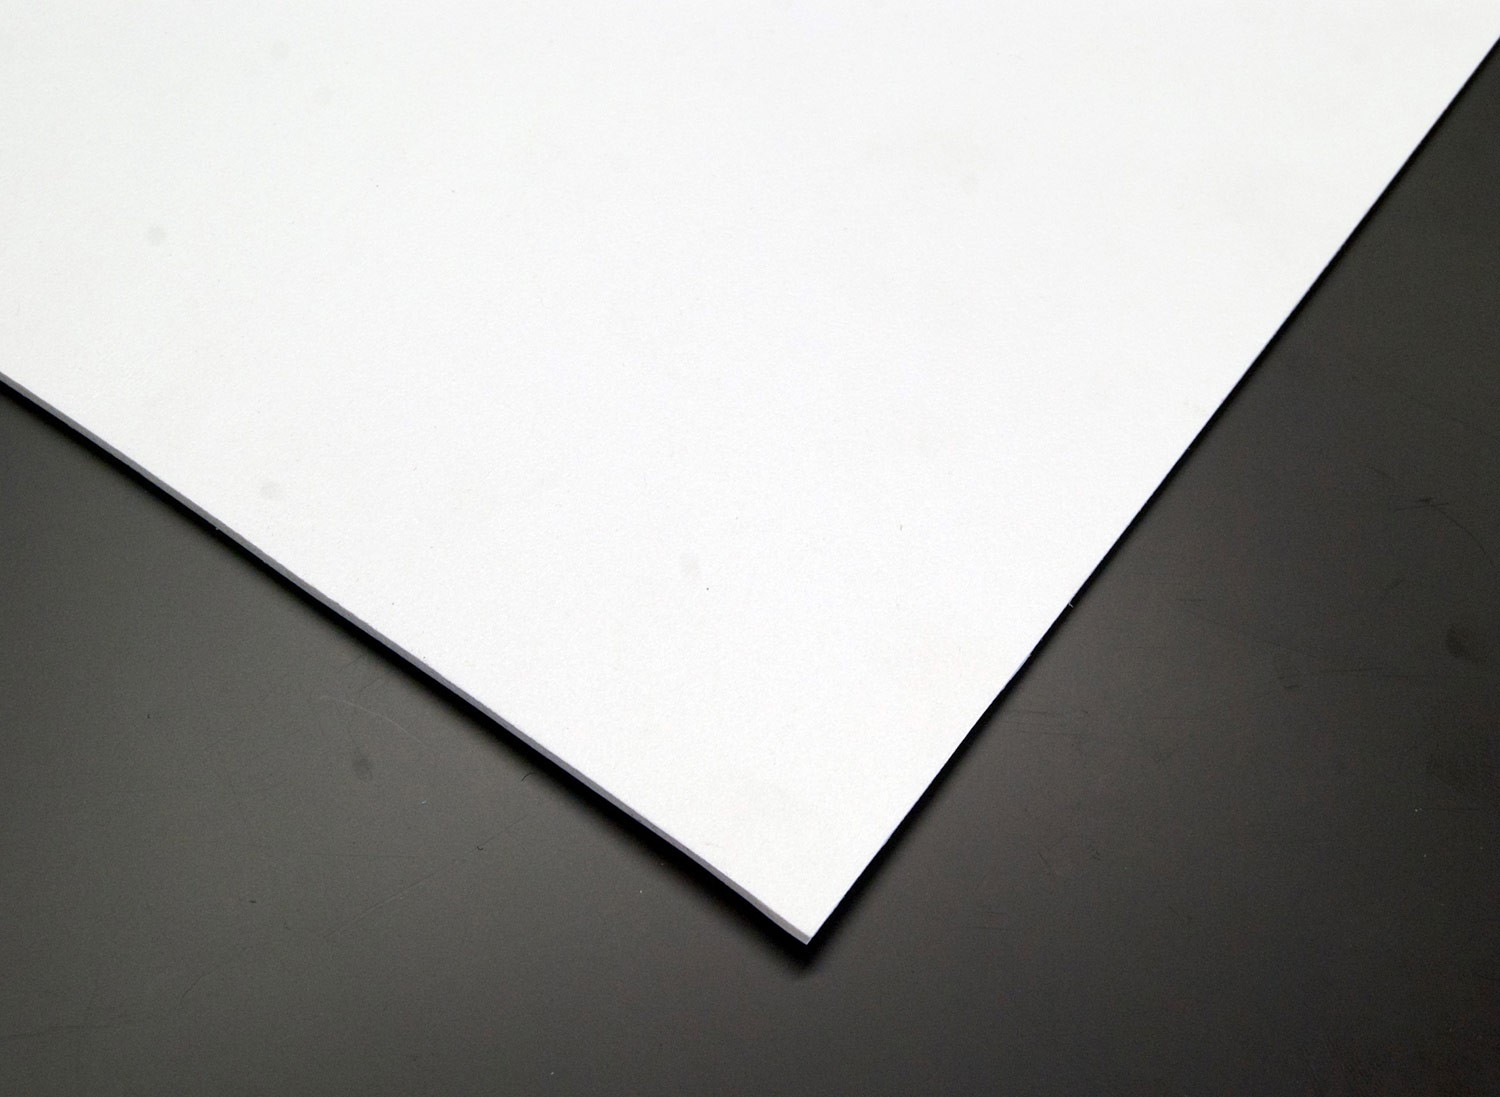 10mm Foamex PVC 2440 x 1220mm (White)